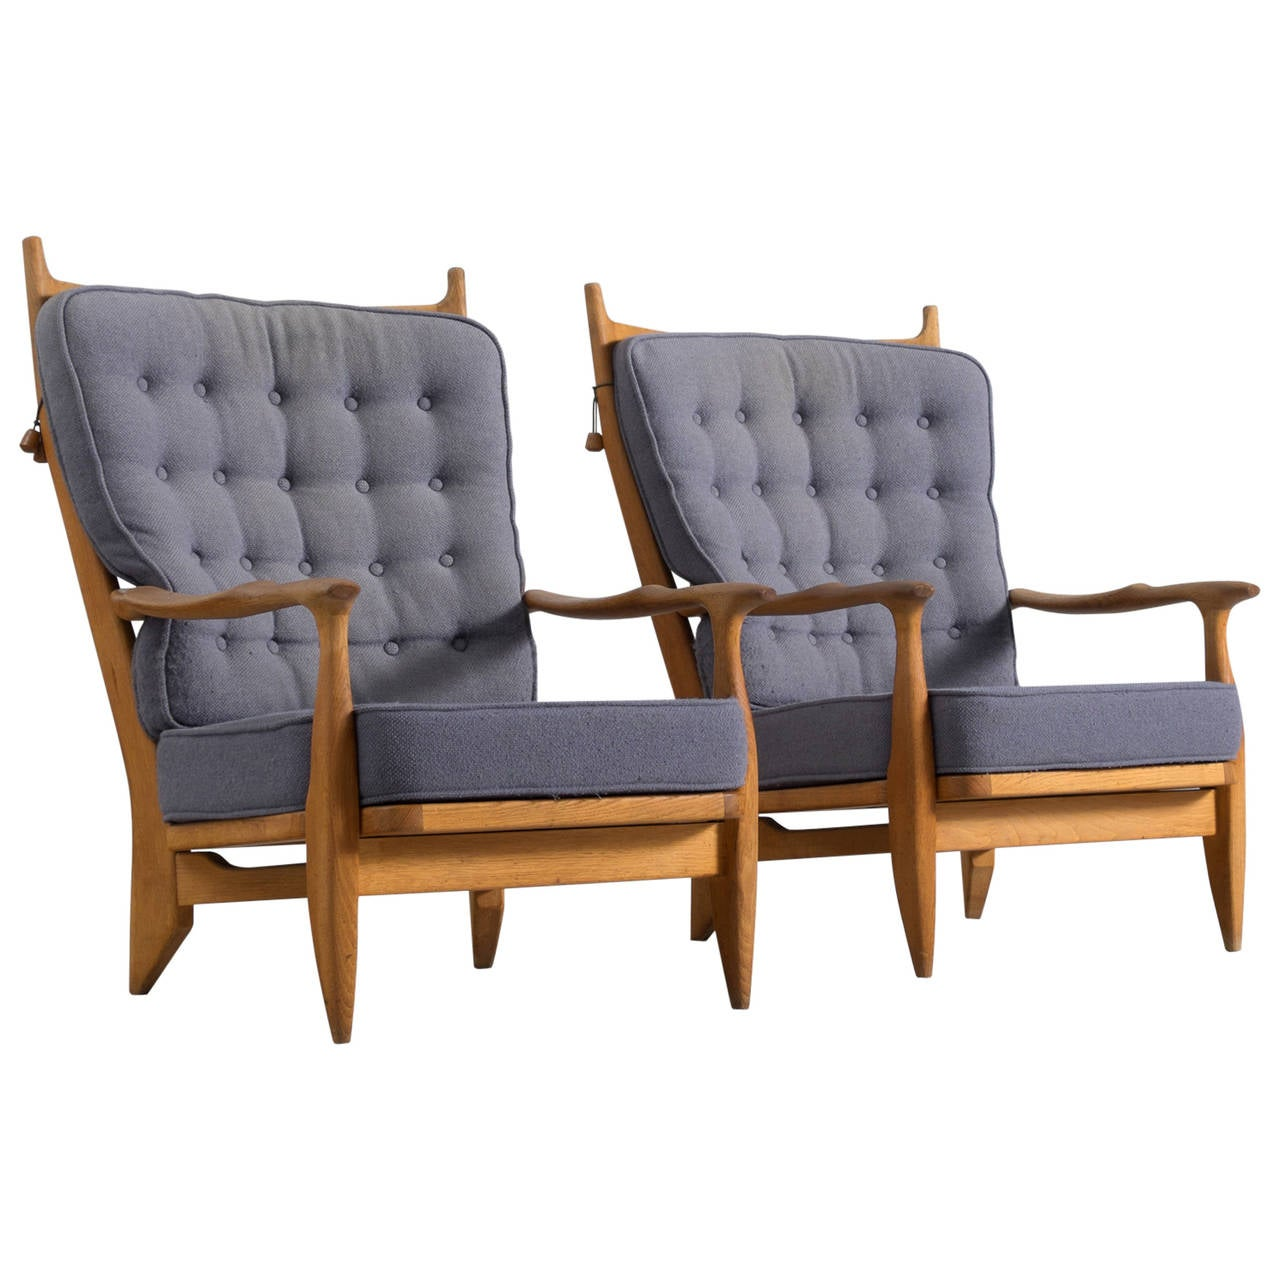 Guillerme And Chambron High Back Lounge Chair For Sale At 1stdibs